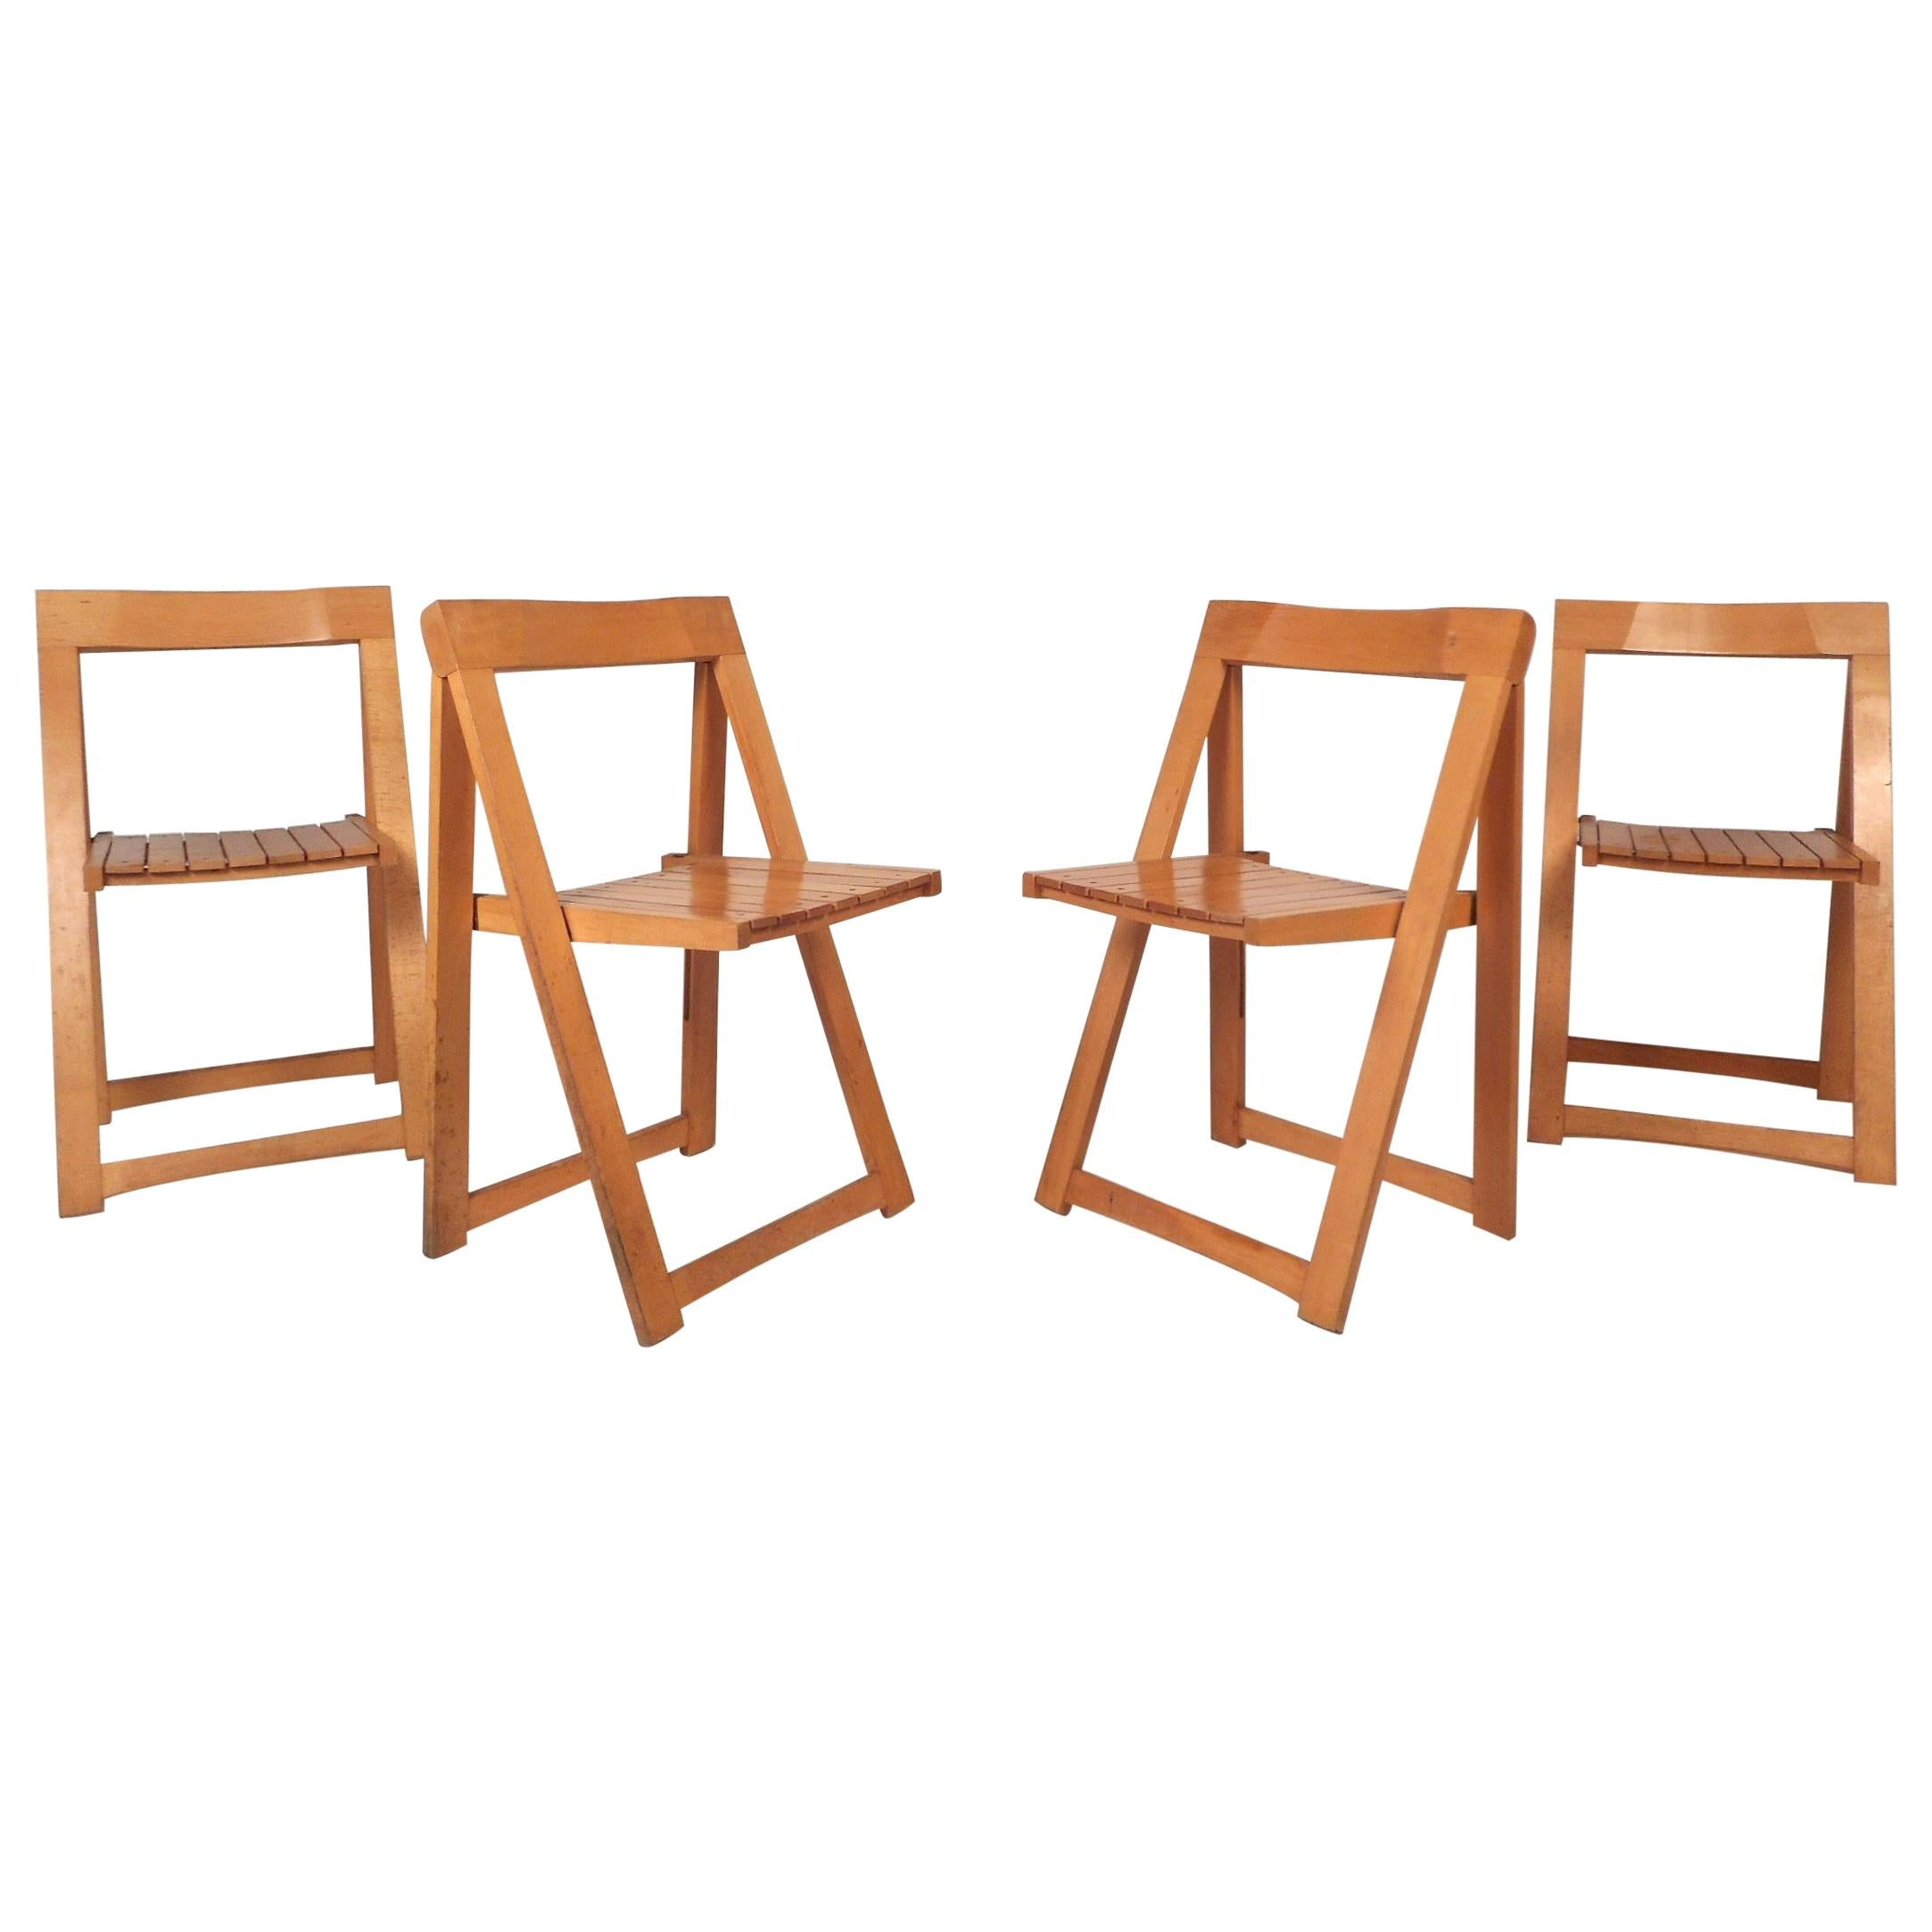 Set of Four Midcentury Folding Chairs